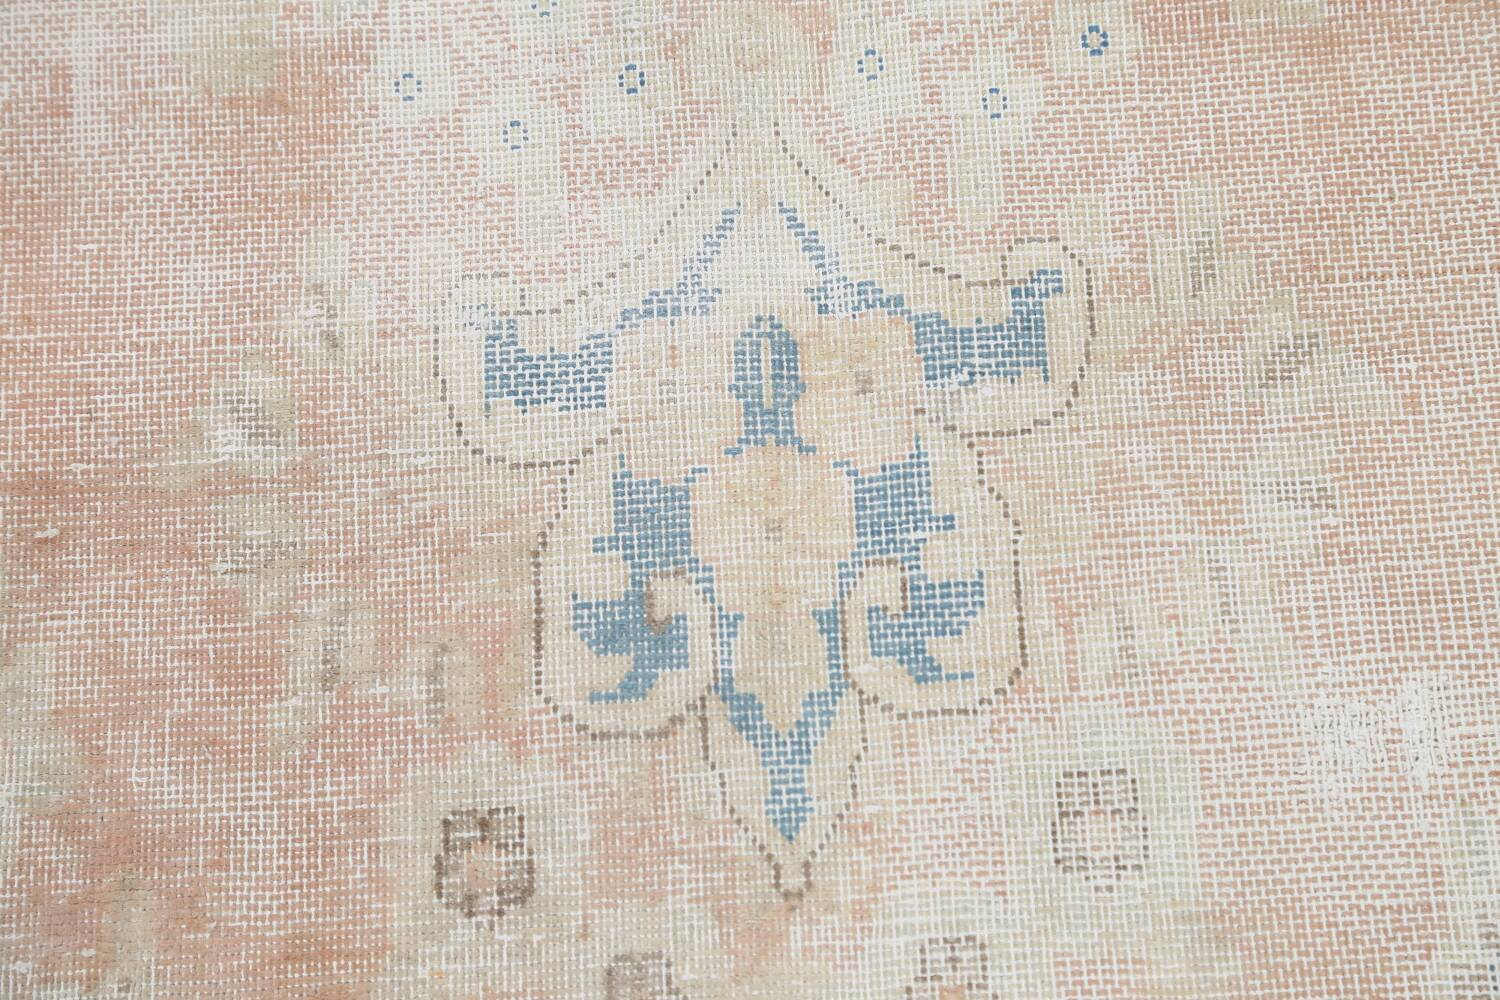 Antique Muted Distressed Kerman Persian Area Rug 10x13 image 10